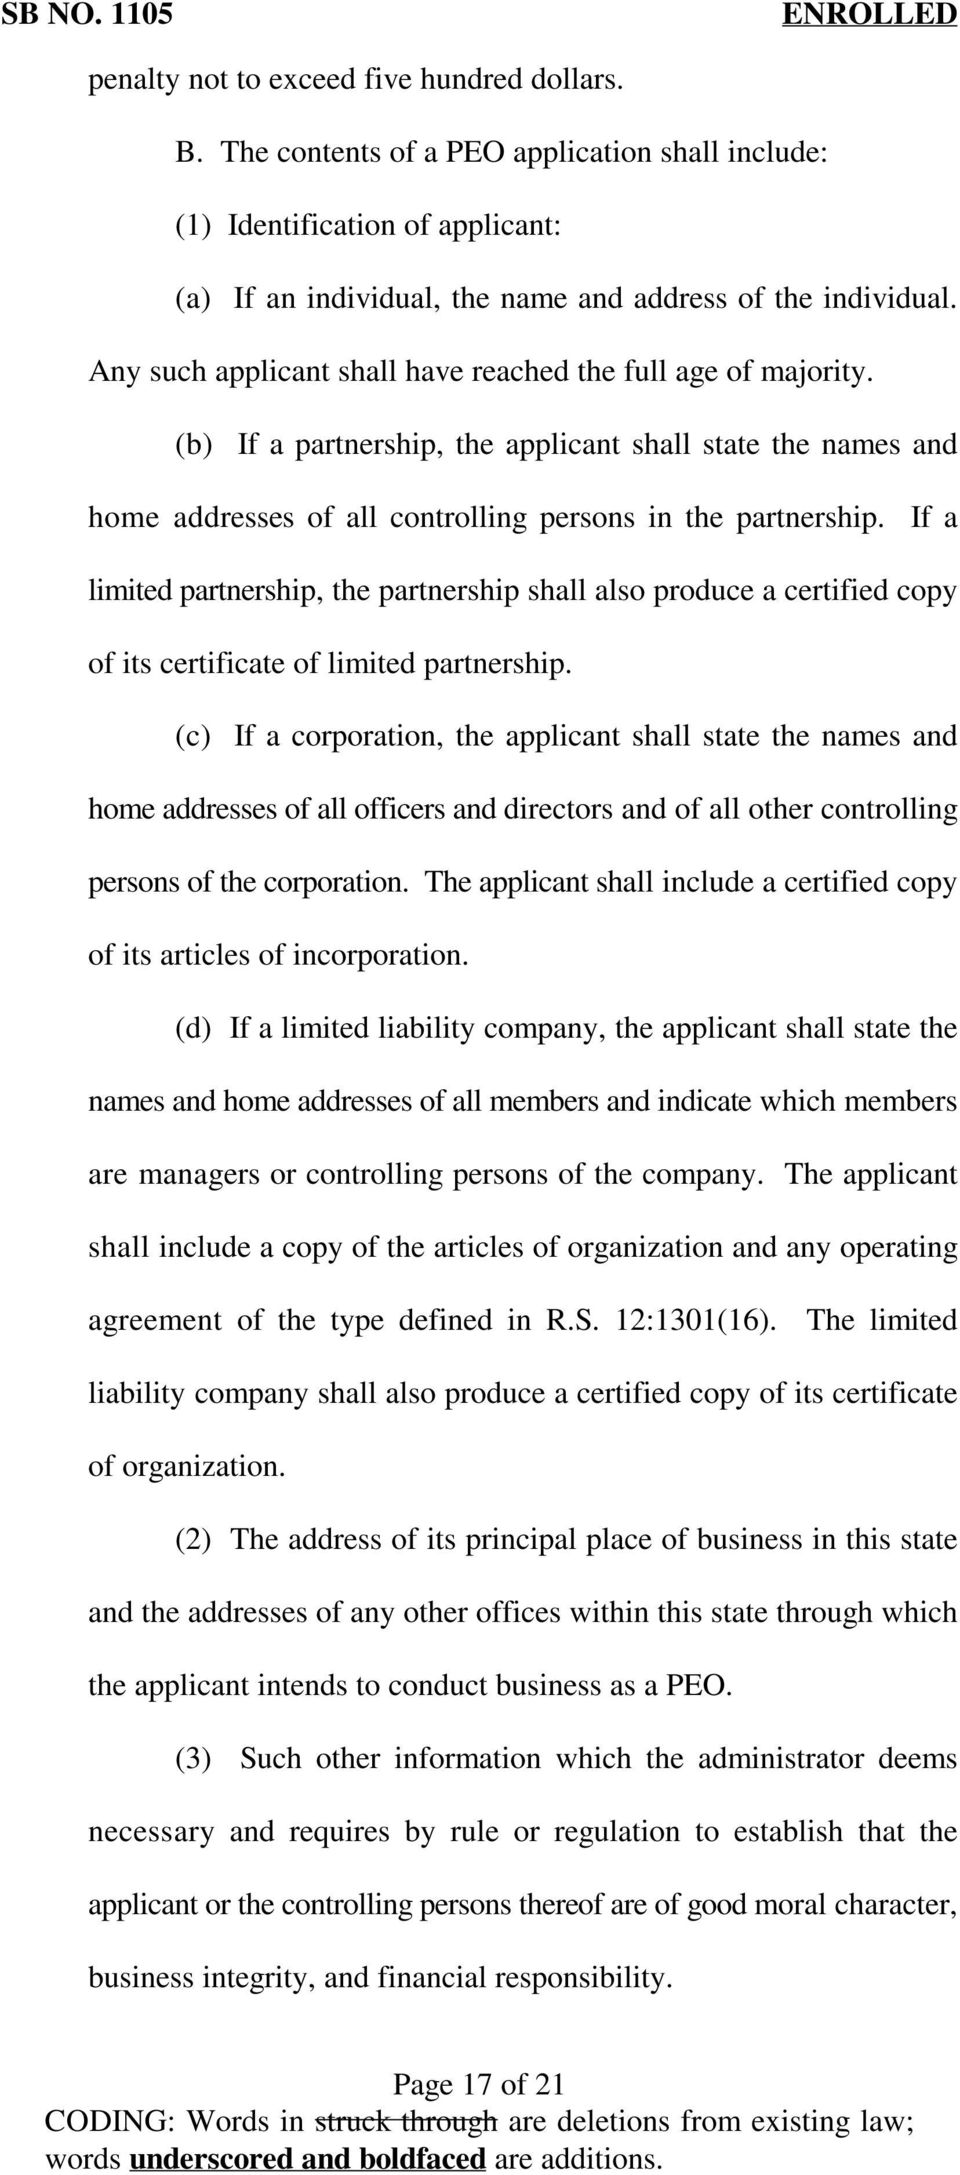 If a limited partnership, the partnership shall also produce a certified copy of its certificate of limited partnership.